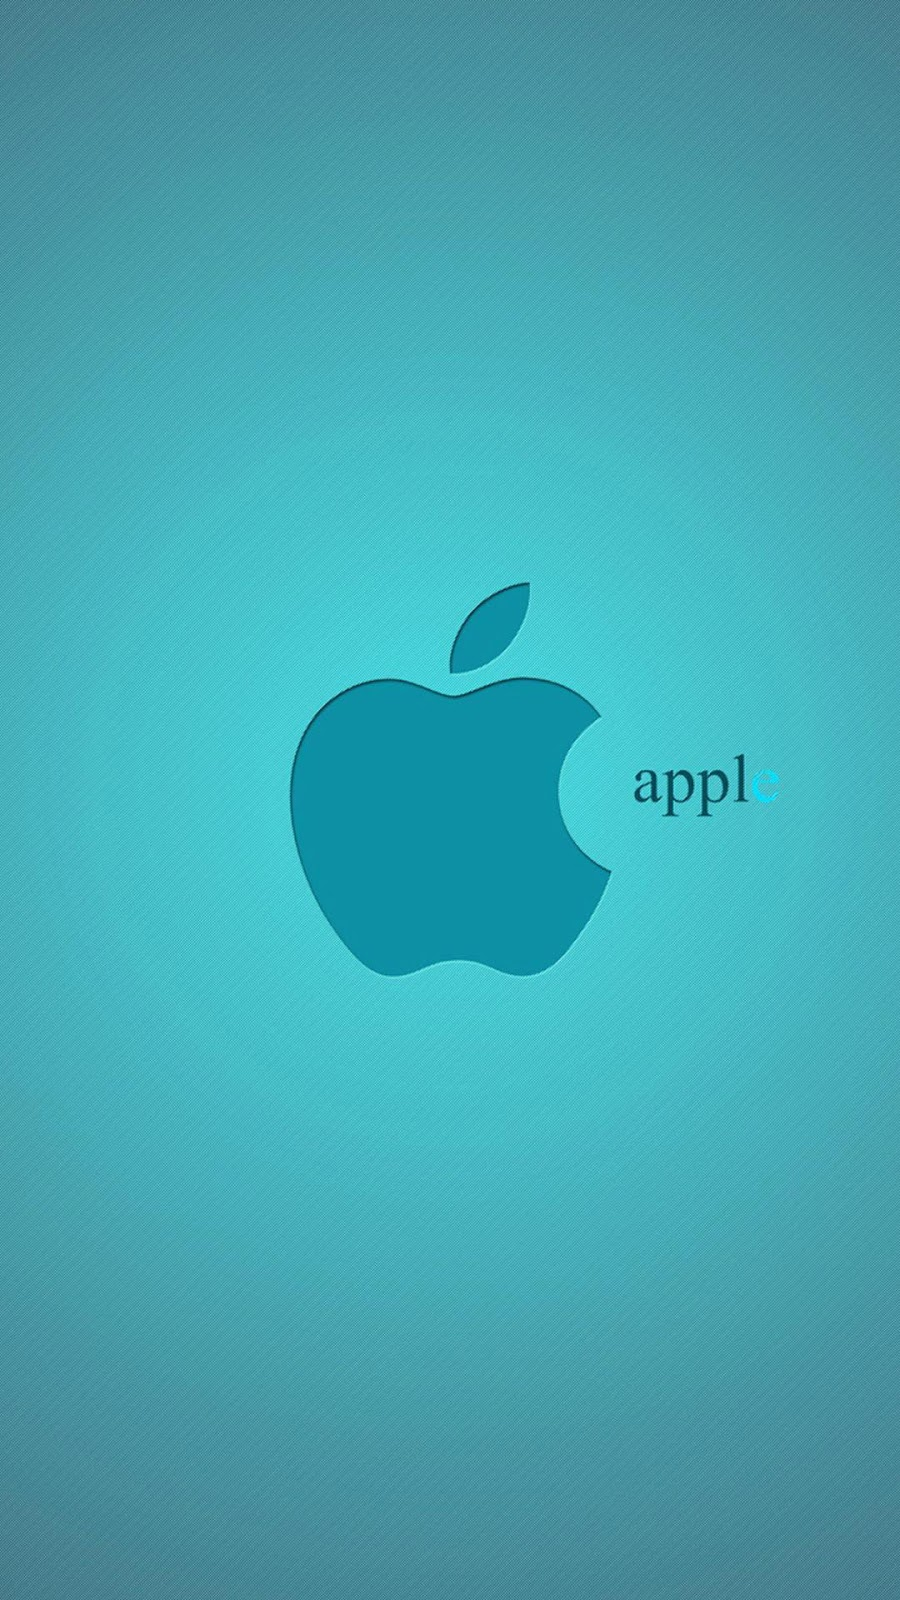 Apple Ios 7 Wallpapers Download Dxf Library Download